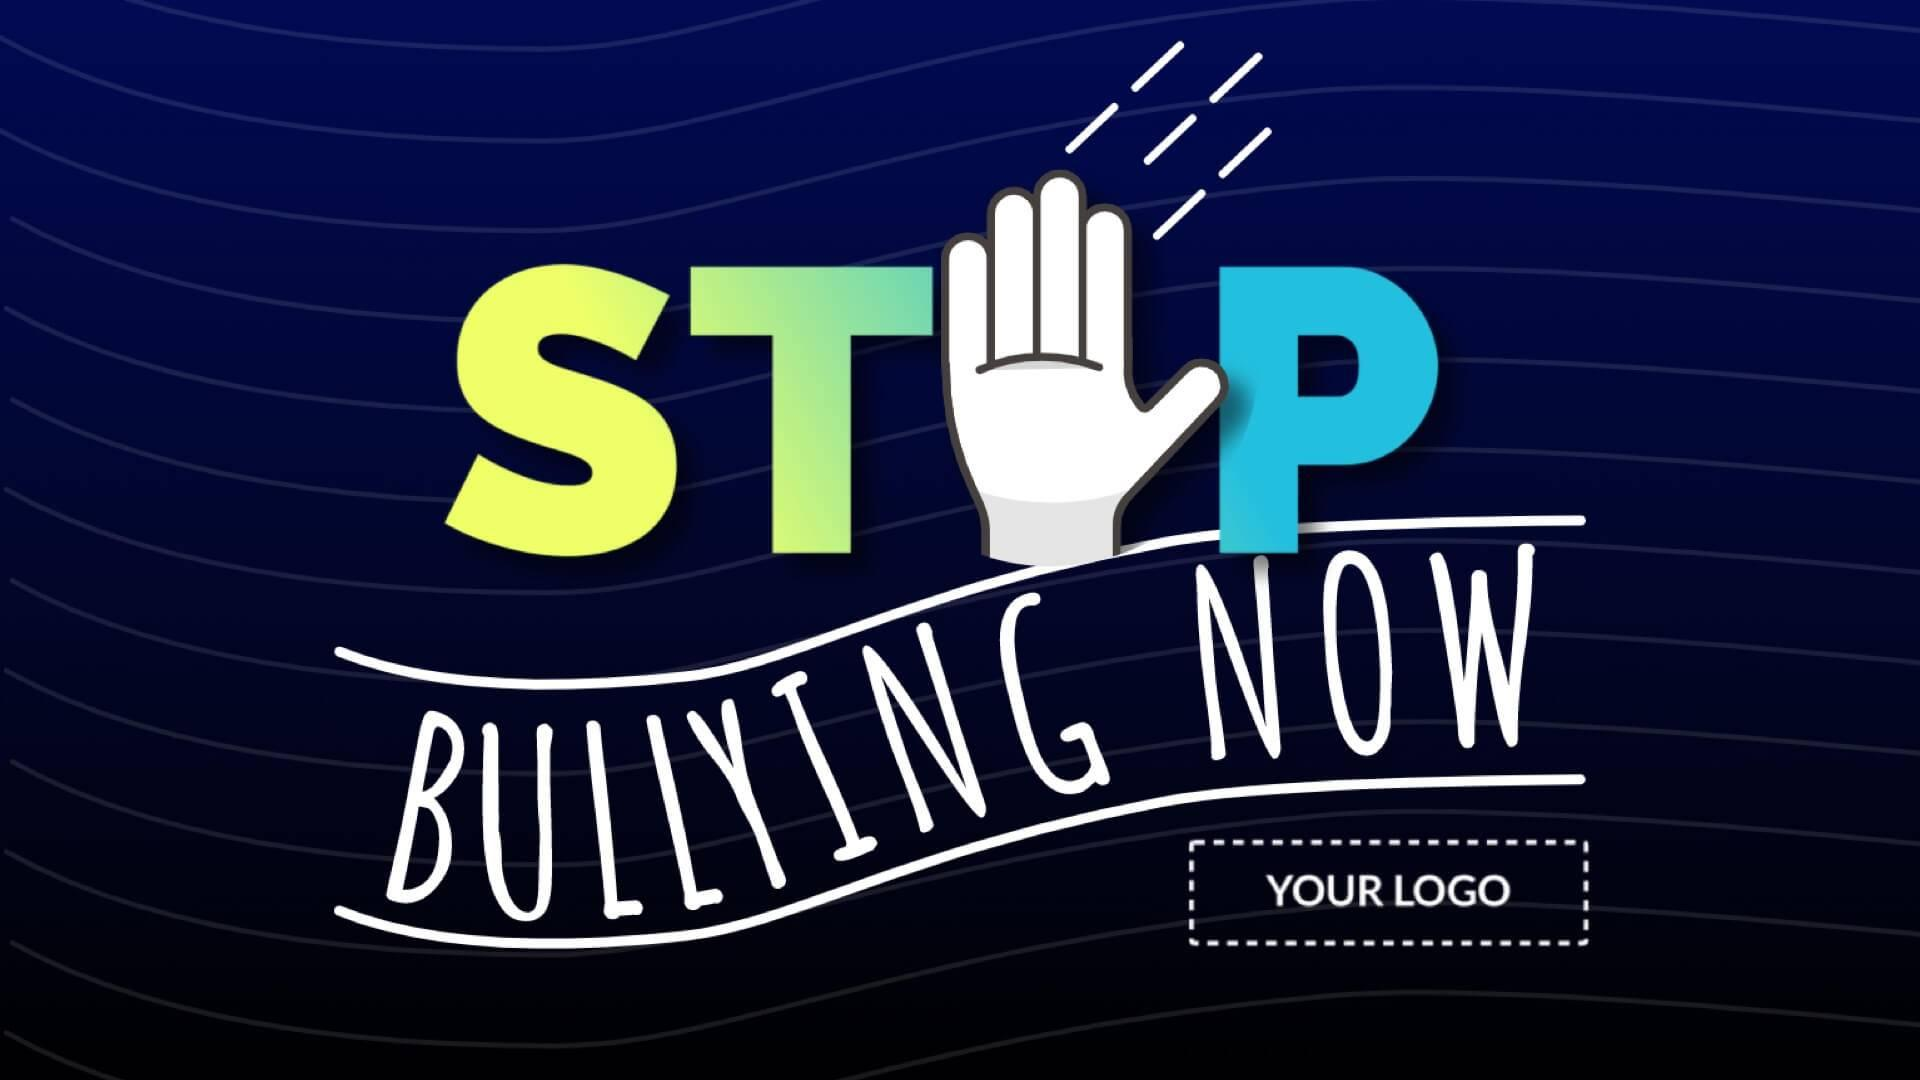 Stop Bullying Digital Signage Template